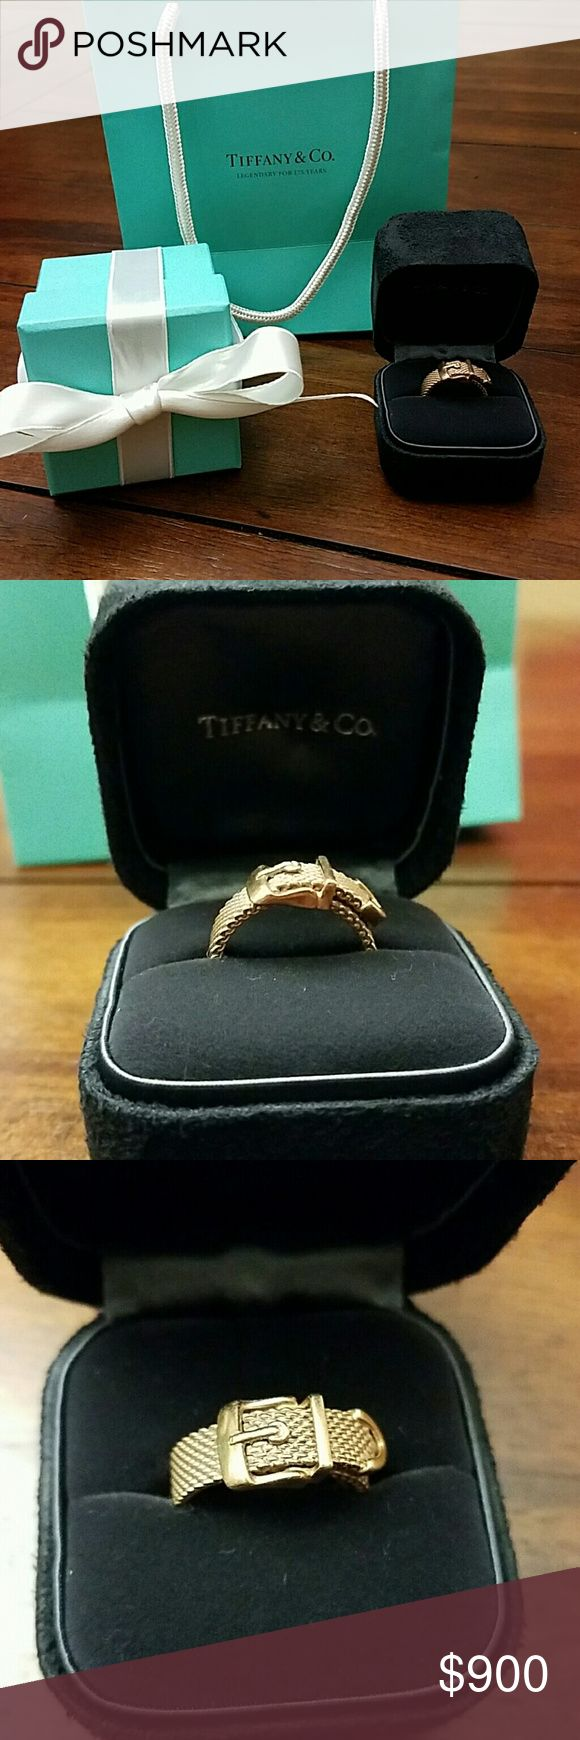 After XMAS SALE! RARE! Tiffany RUBEDO ring On sale until 1/1/2017! Price will rebound after!  Your chance to own a very UNIQUE and limited ring!  Tiffany & Co. Rubedo somerset mesh buckle ring. Size 7. EUC!  This item has been retired and is no longer available! You cannot find this ring anywhere else on the Internet!   Comes with Tiffany presentation box, gift box, bag, and ribbon. Tiffany & Co. Jewelry Rings